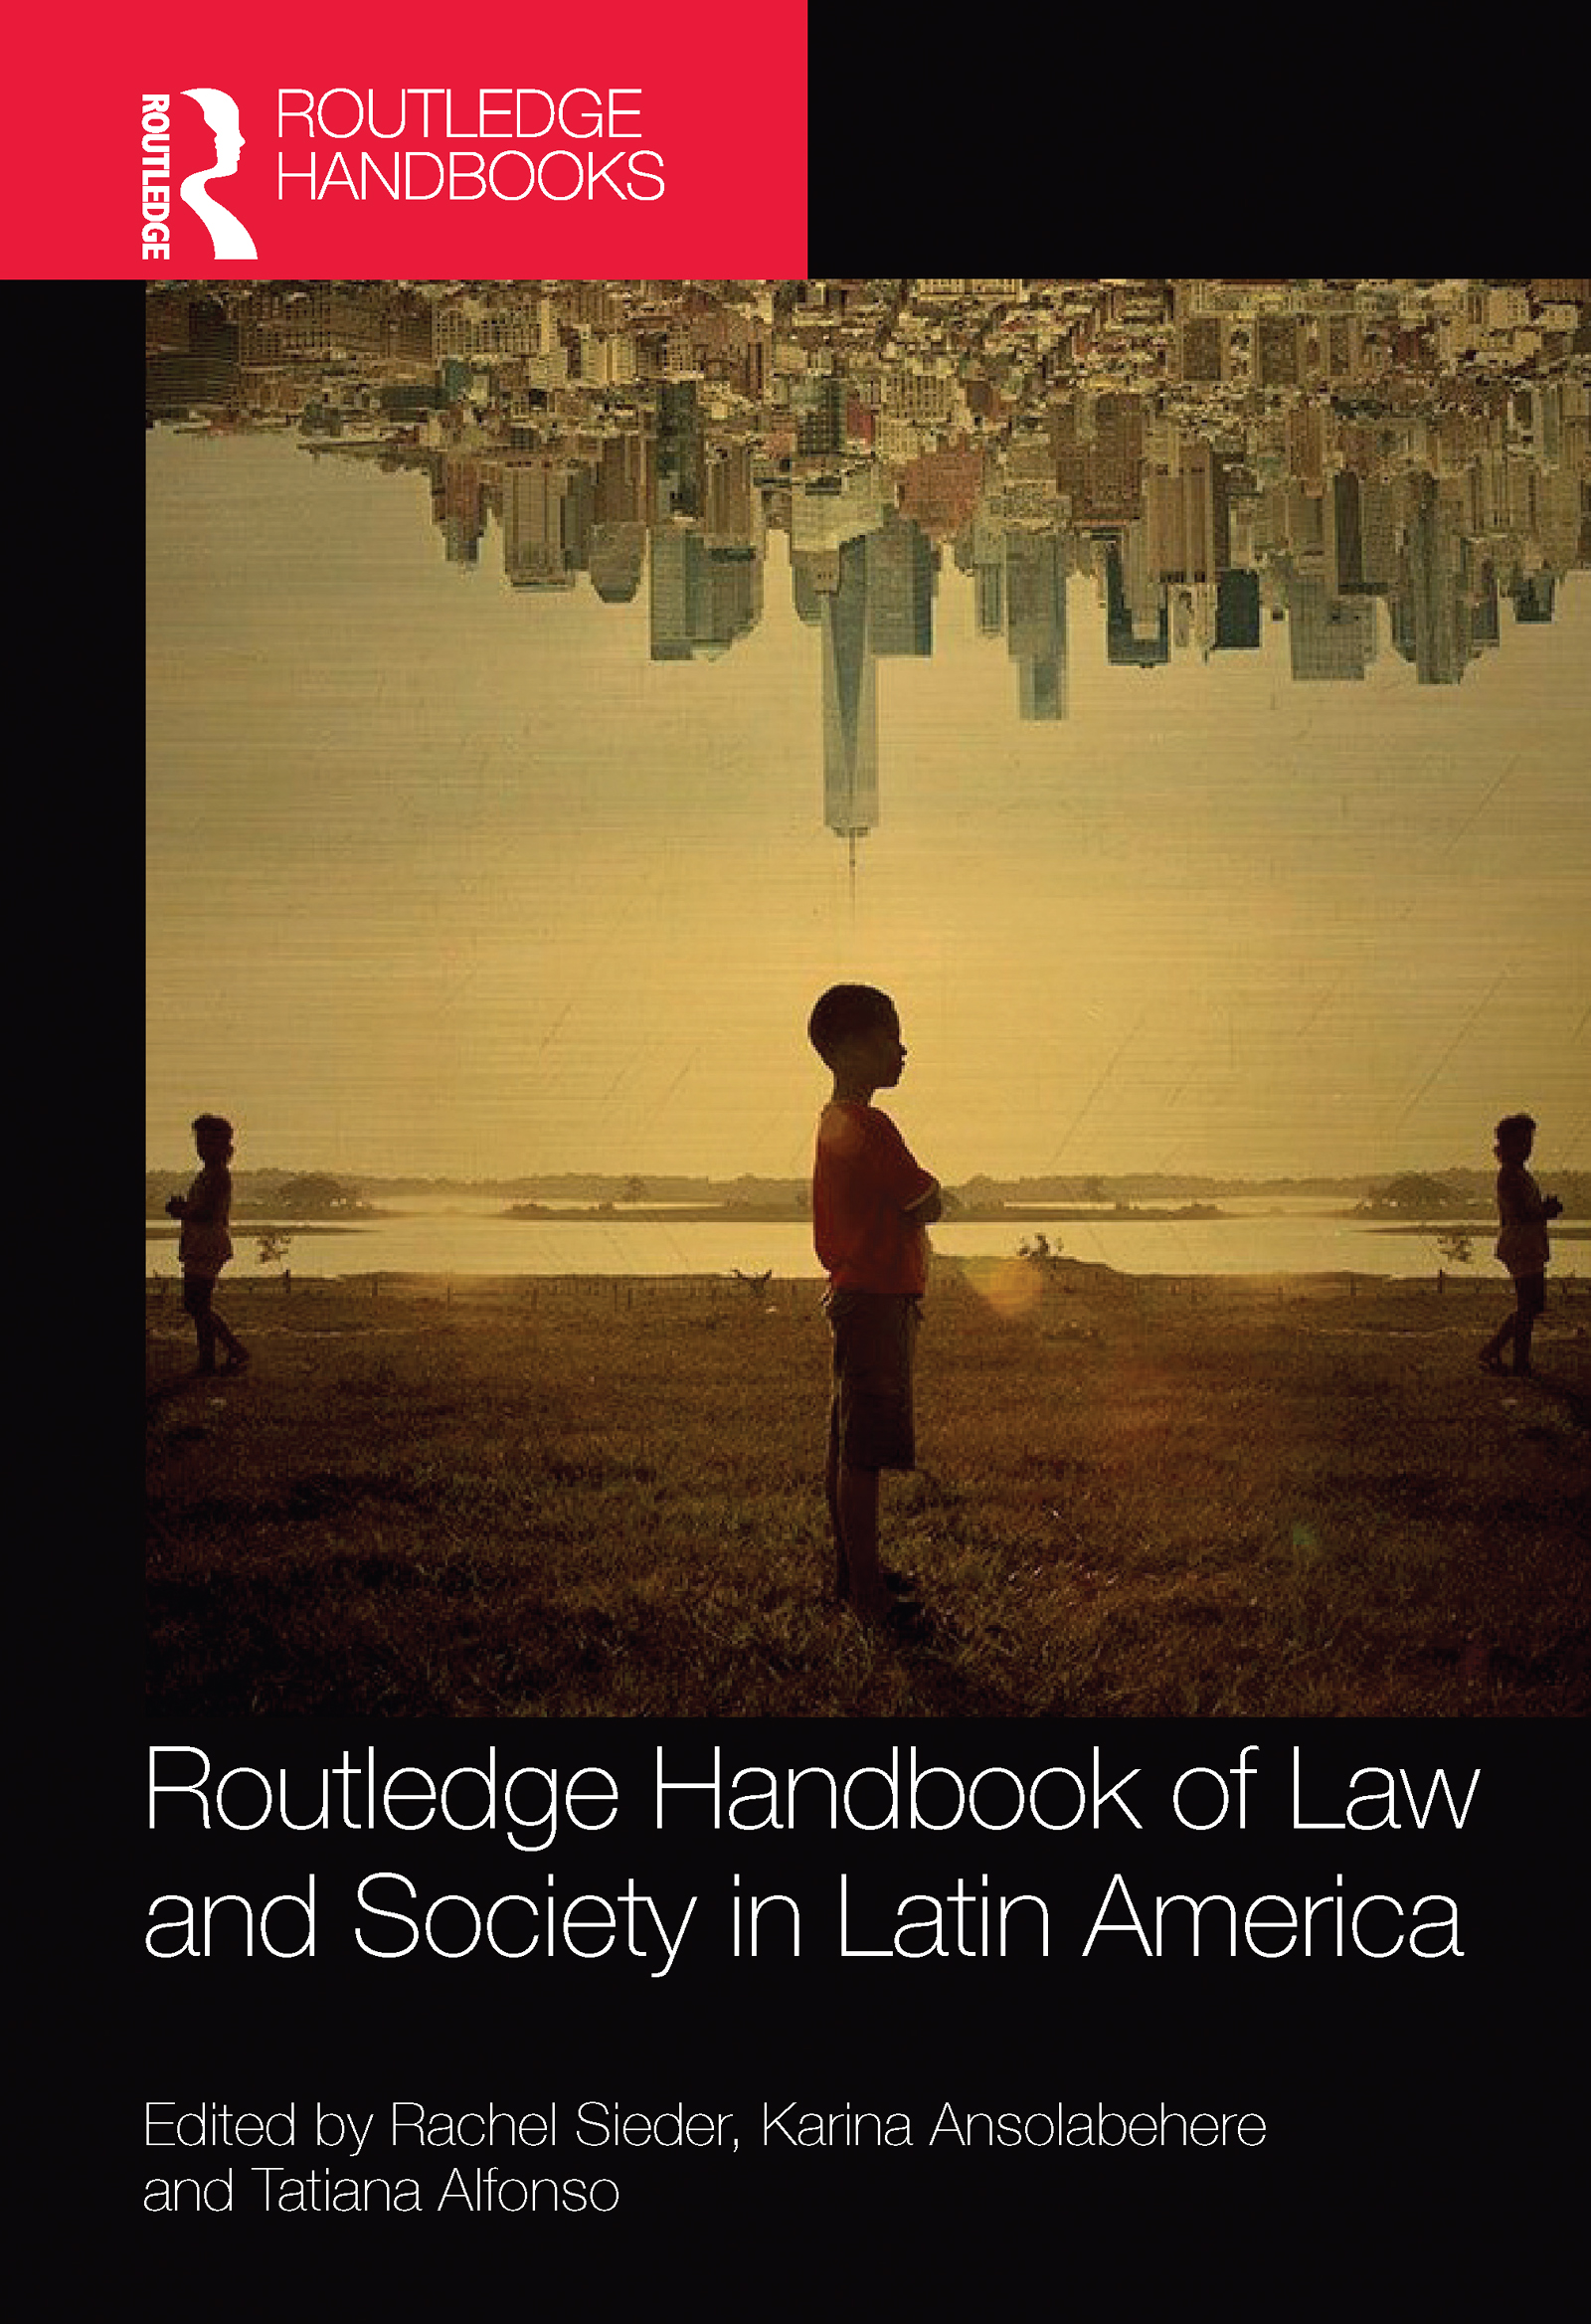 Routledge Handbook of Law and Society in Latin America